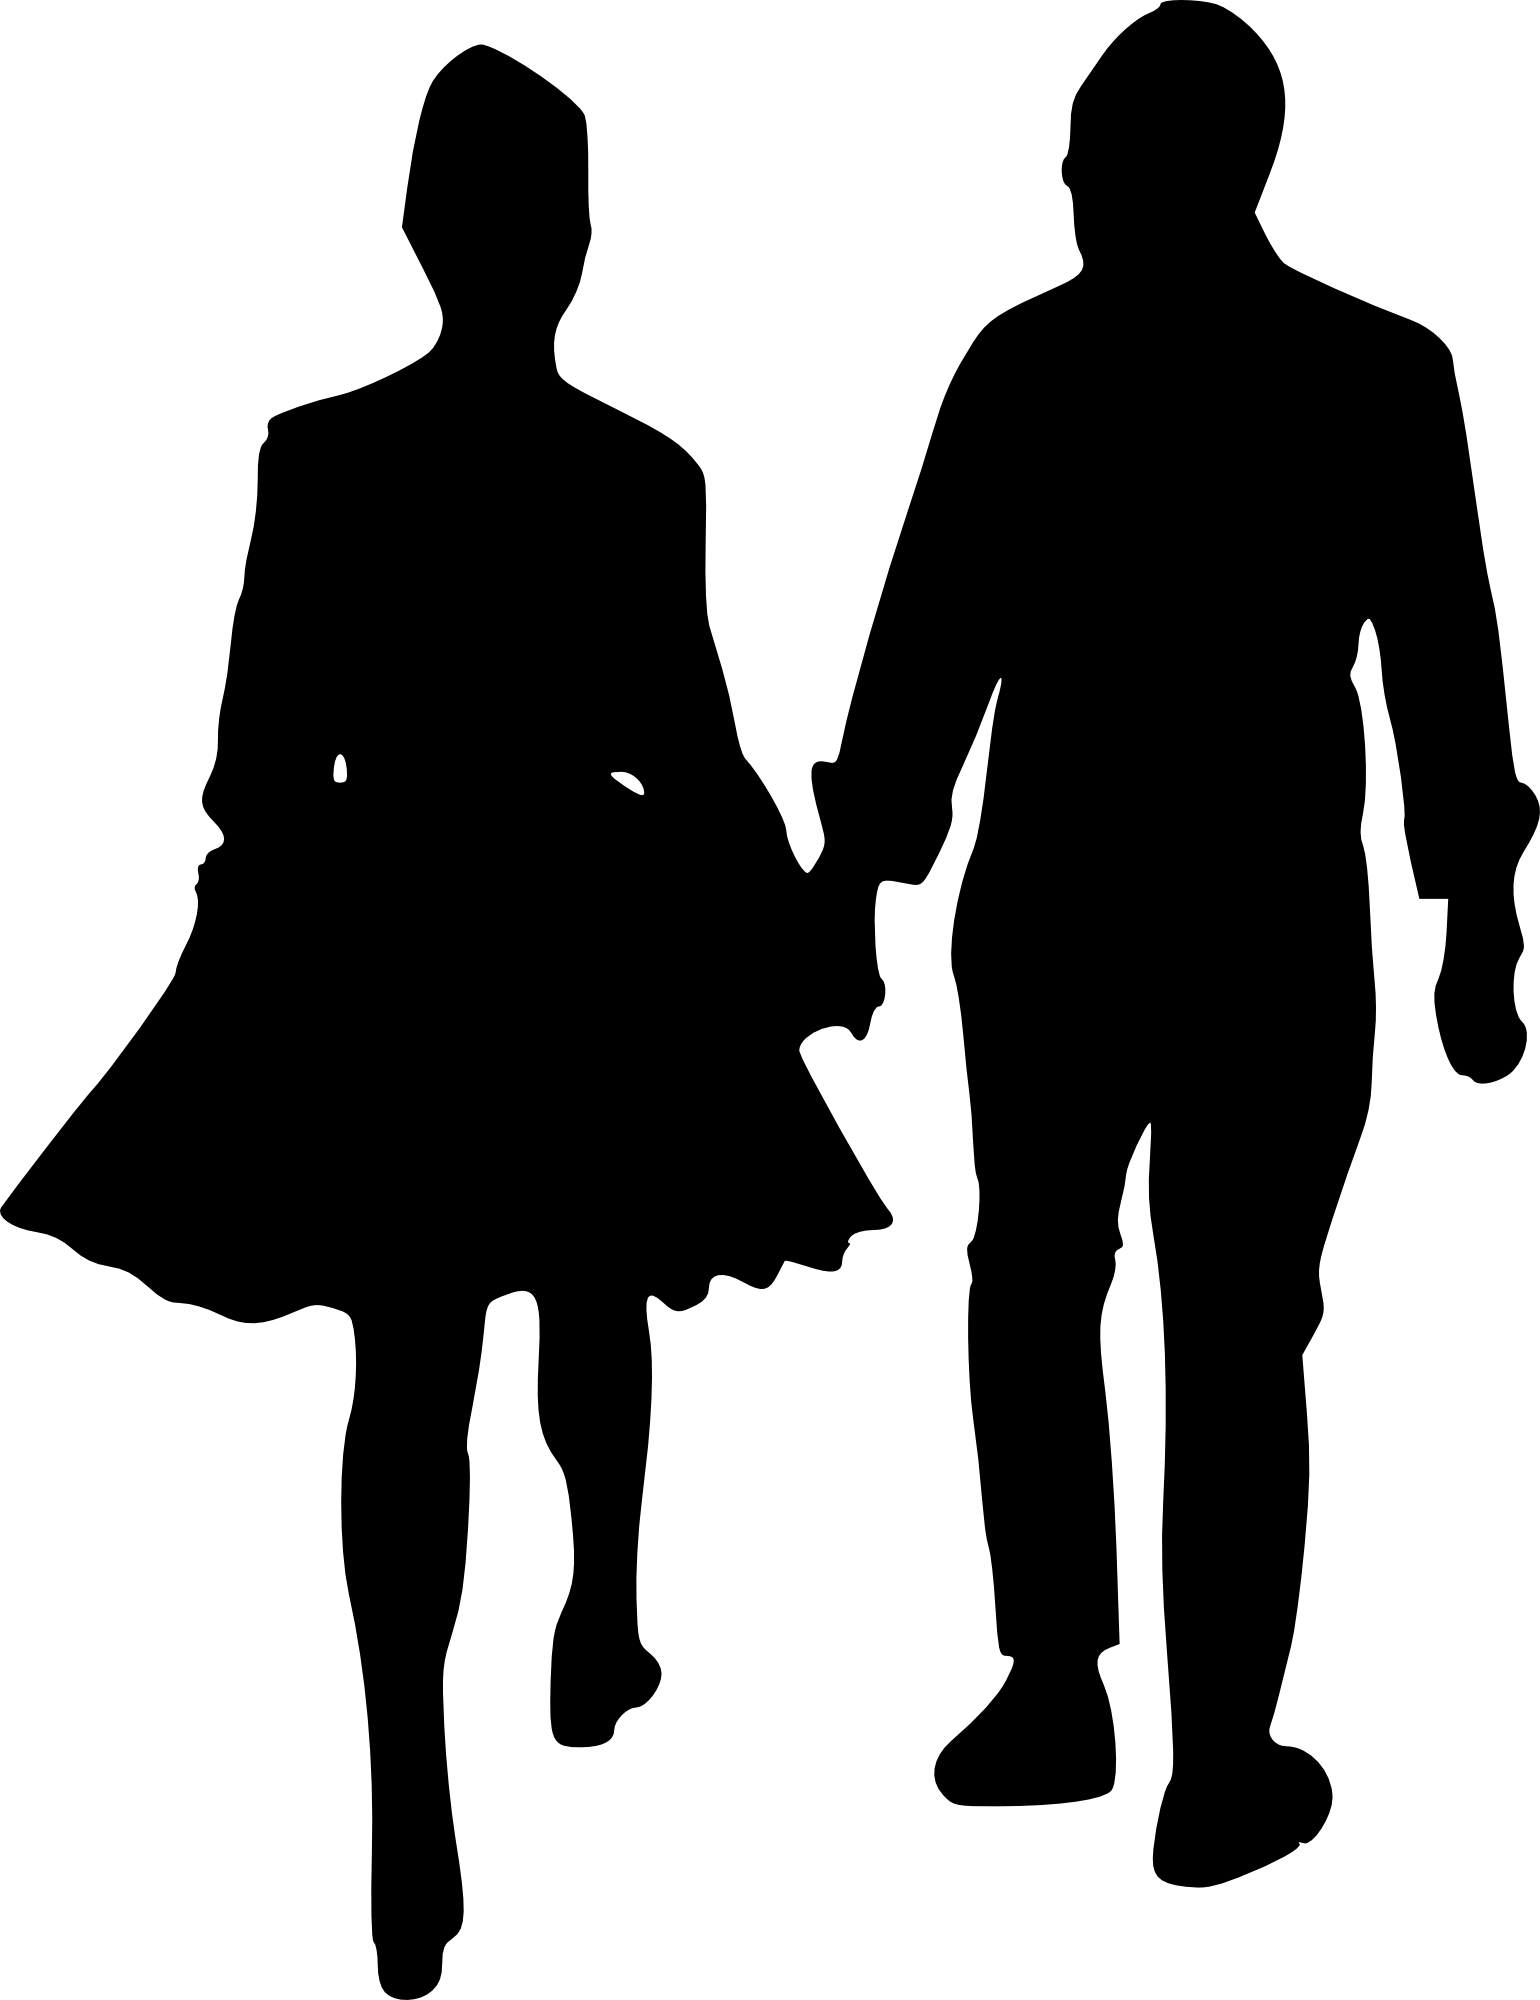 people talking silhouette png